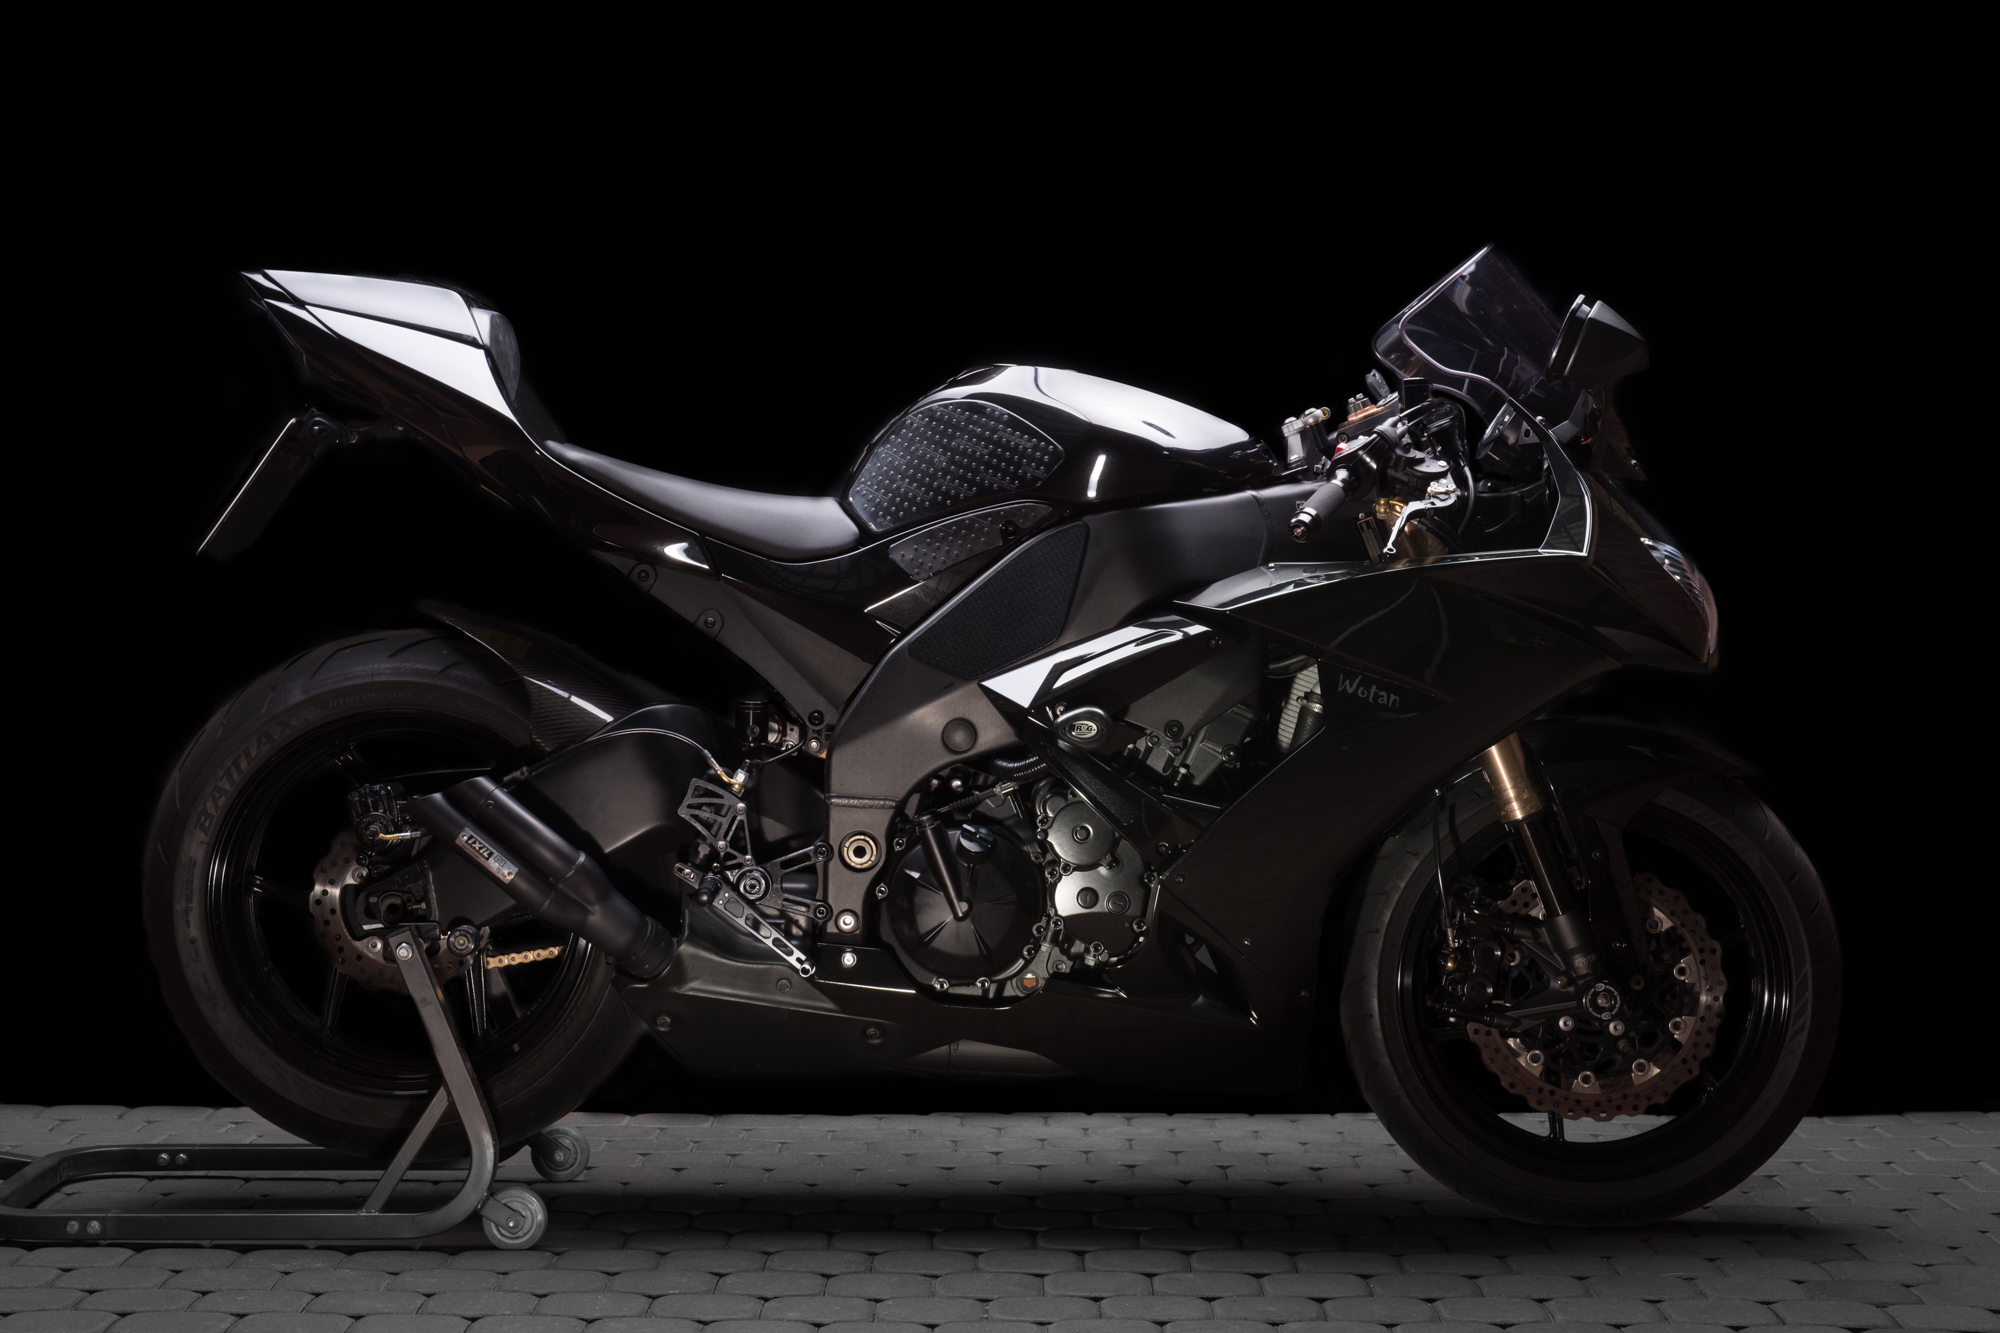 Studio Shoot, Part 3: Kawasaki ZX10R Ninja